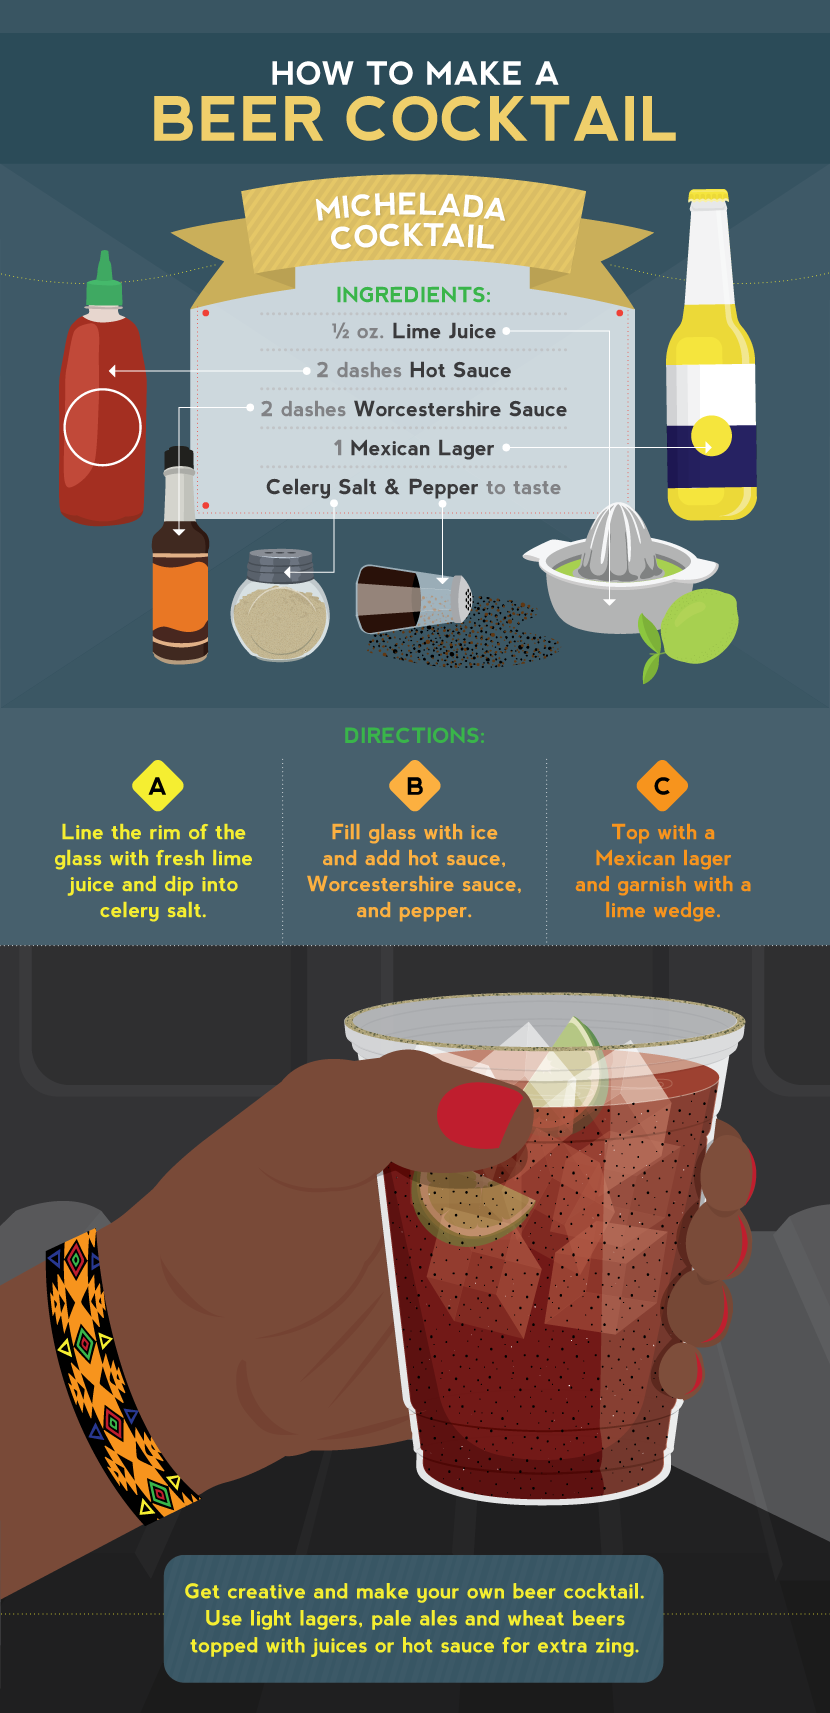 How to make a beer cock tail